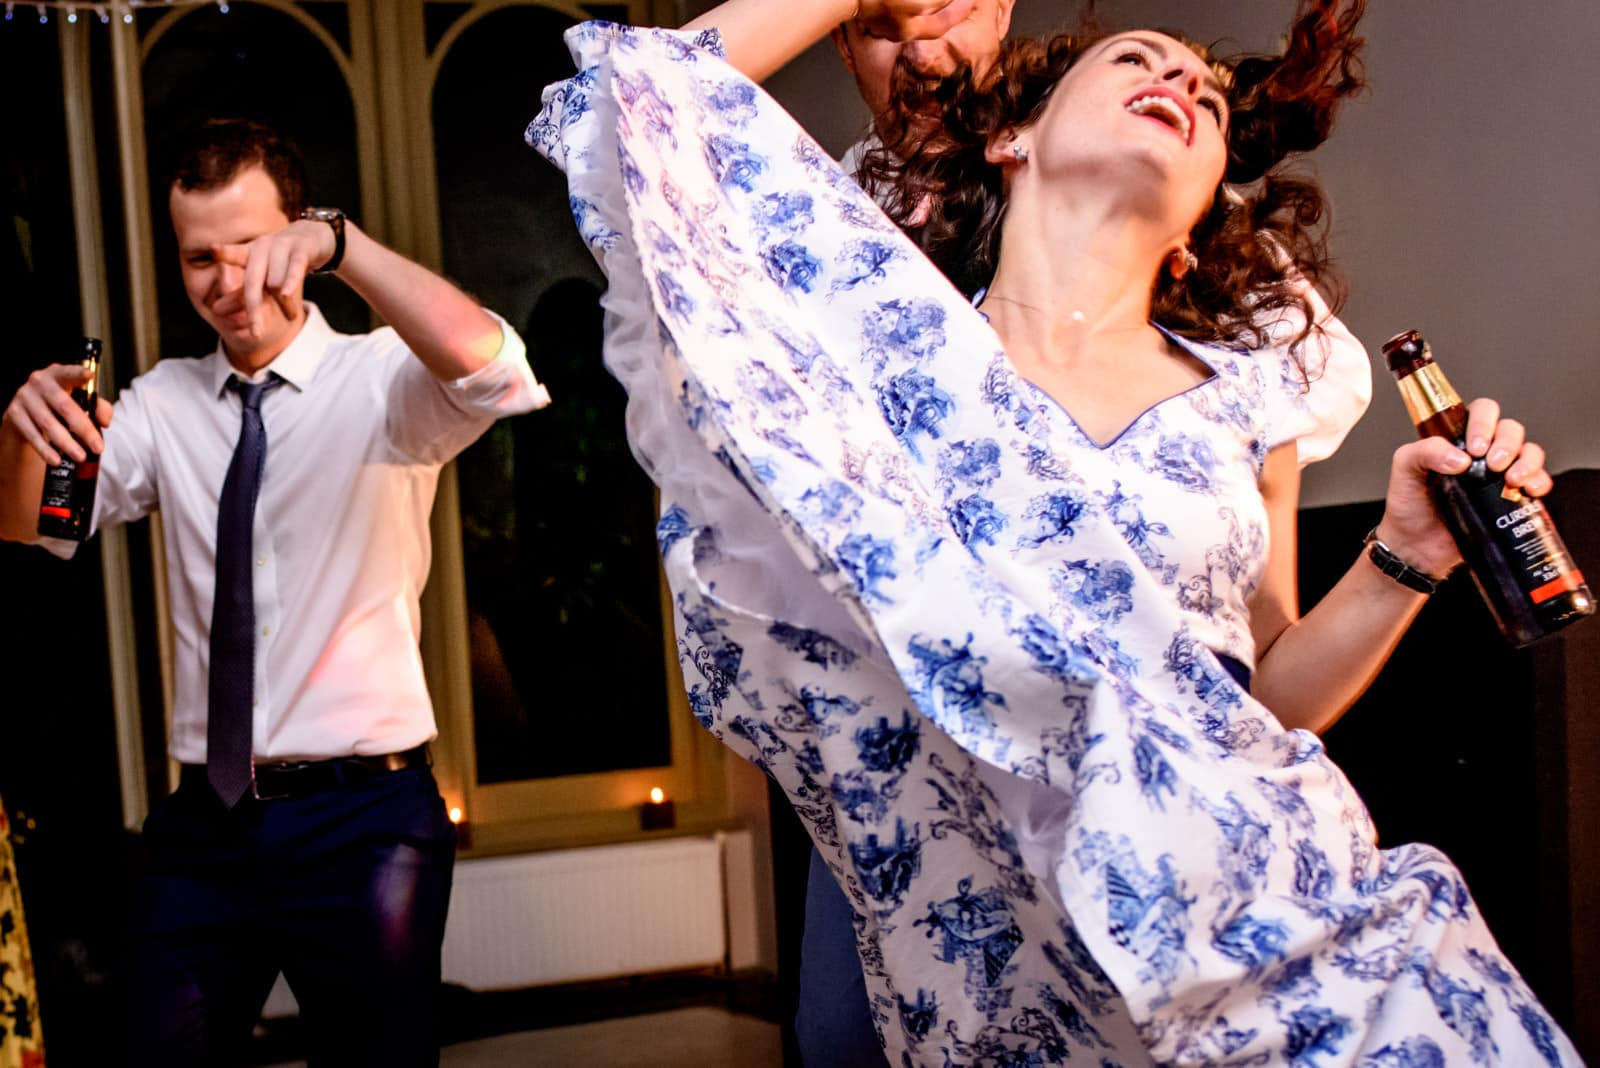 Dress in the air and crazy dance moves at this wedding